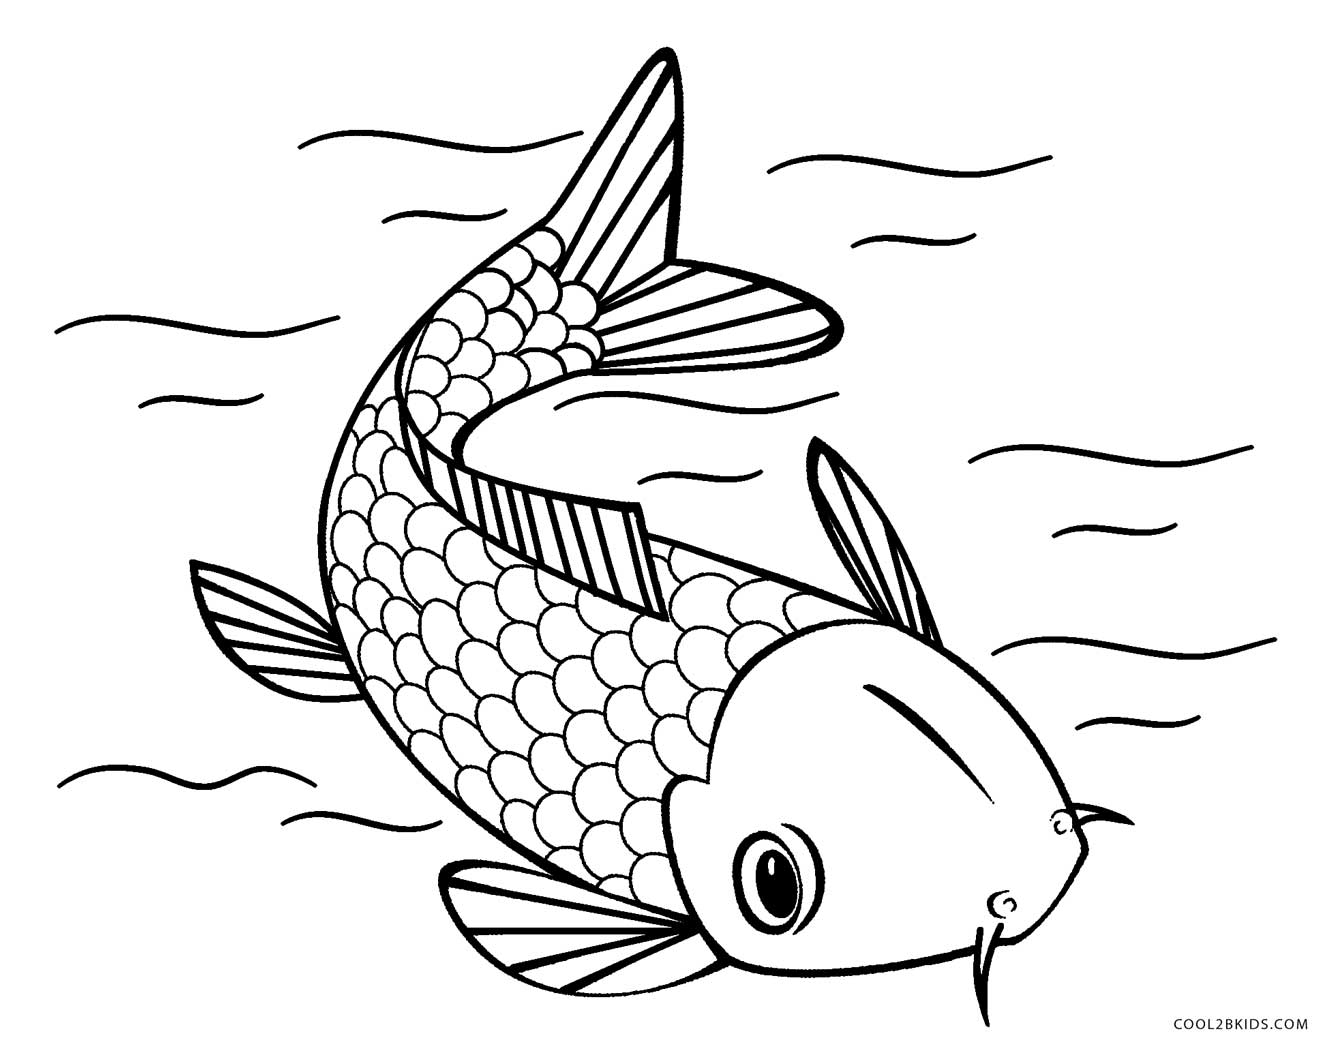 coloring pages for fish fish coloring page 2016 printable activity shelter fish coloring for pages